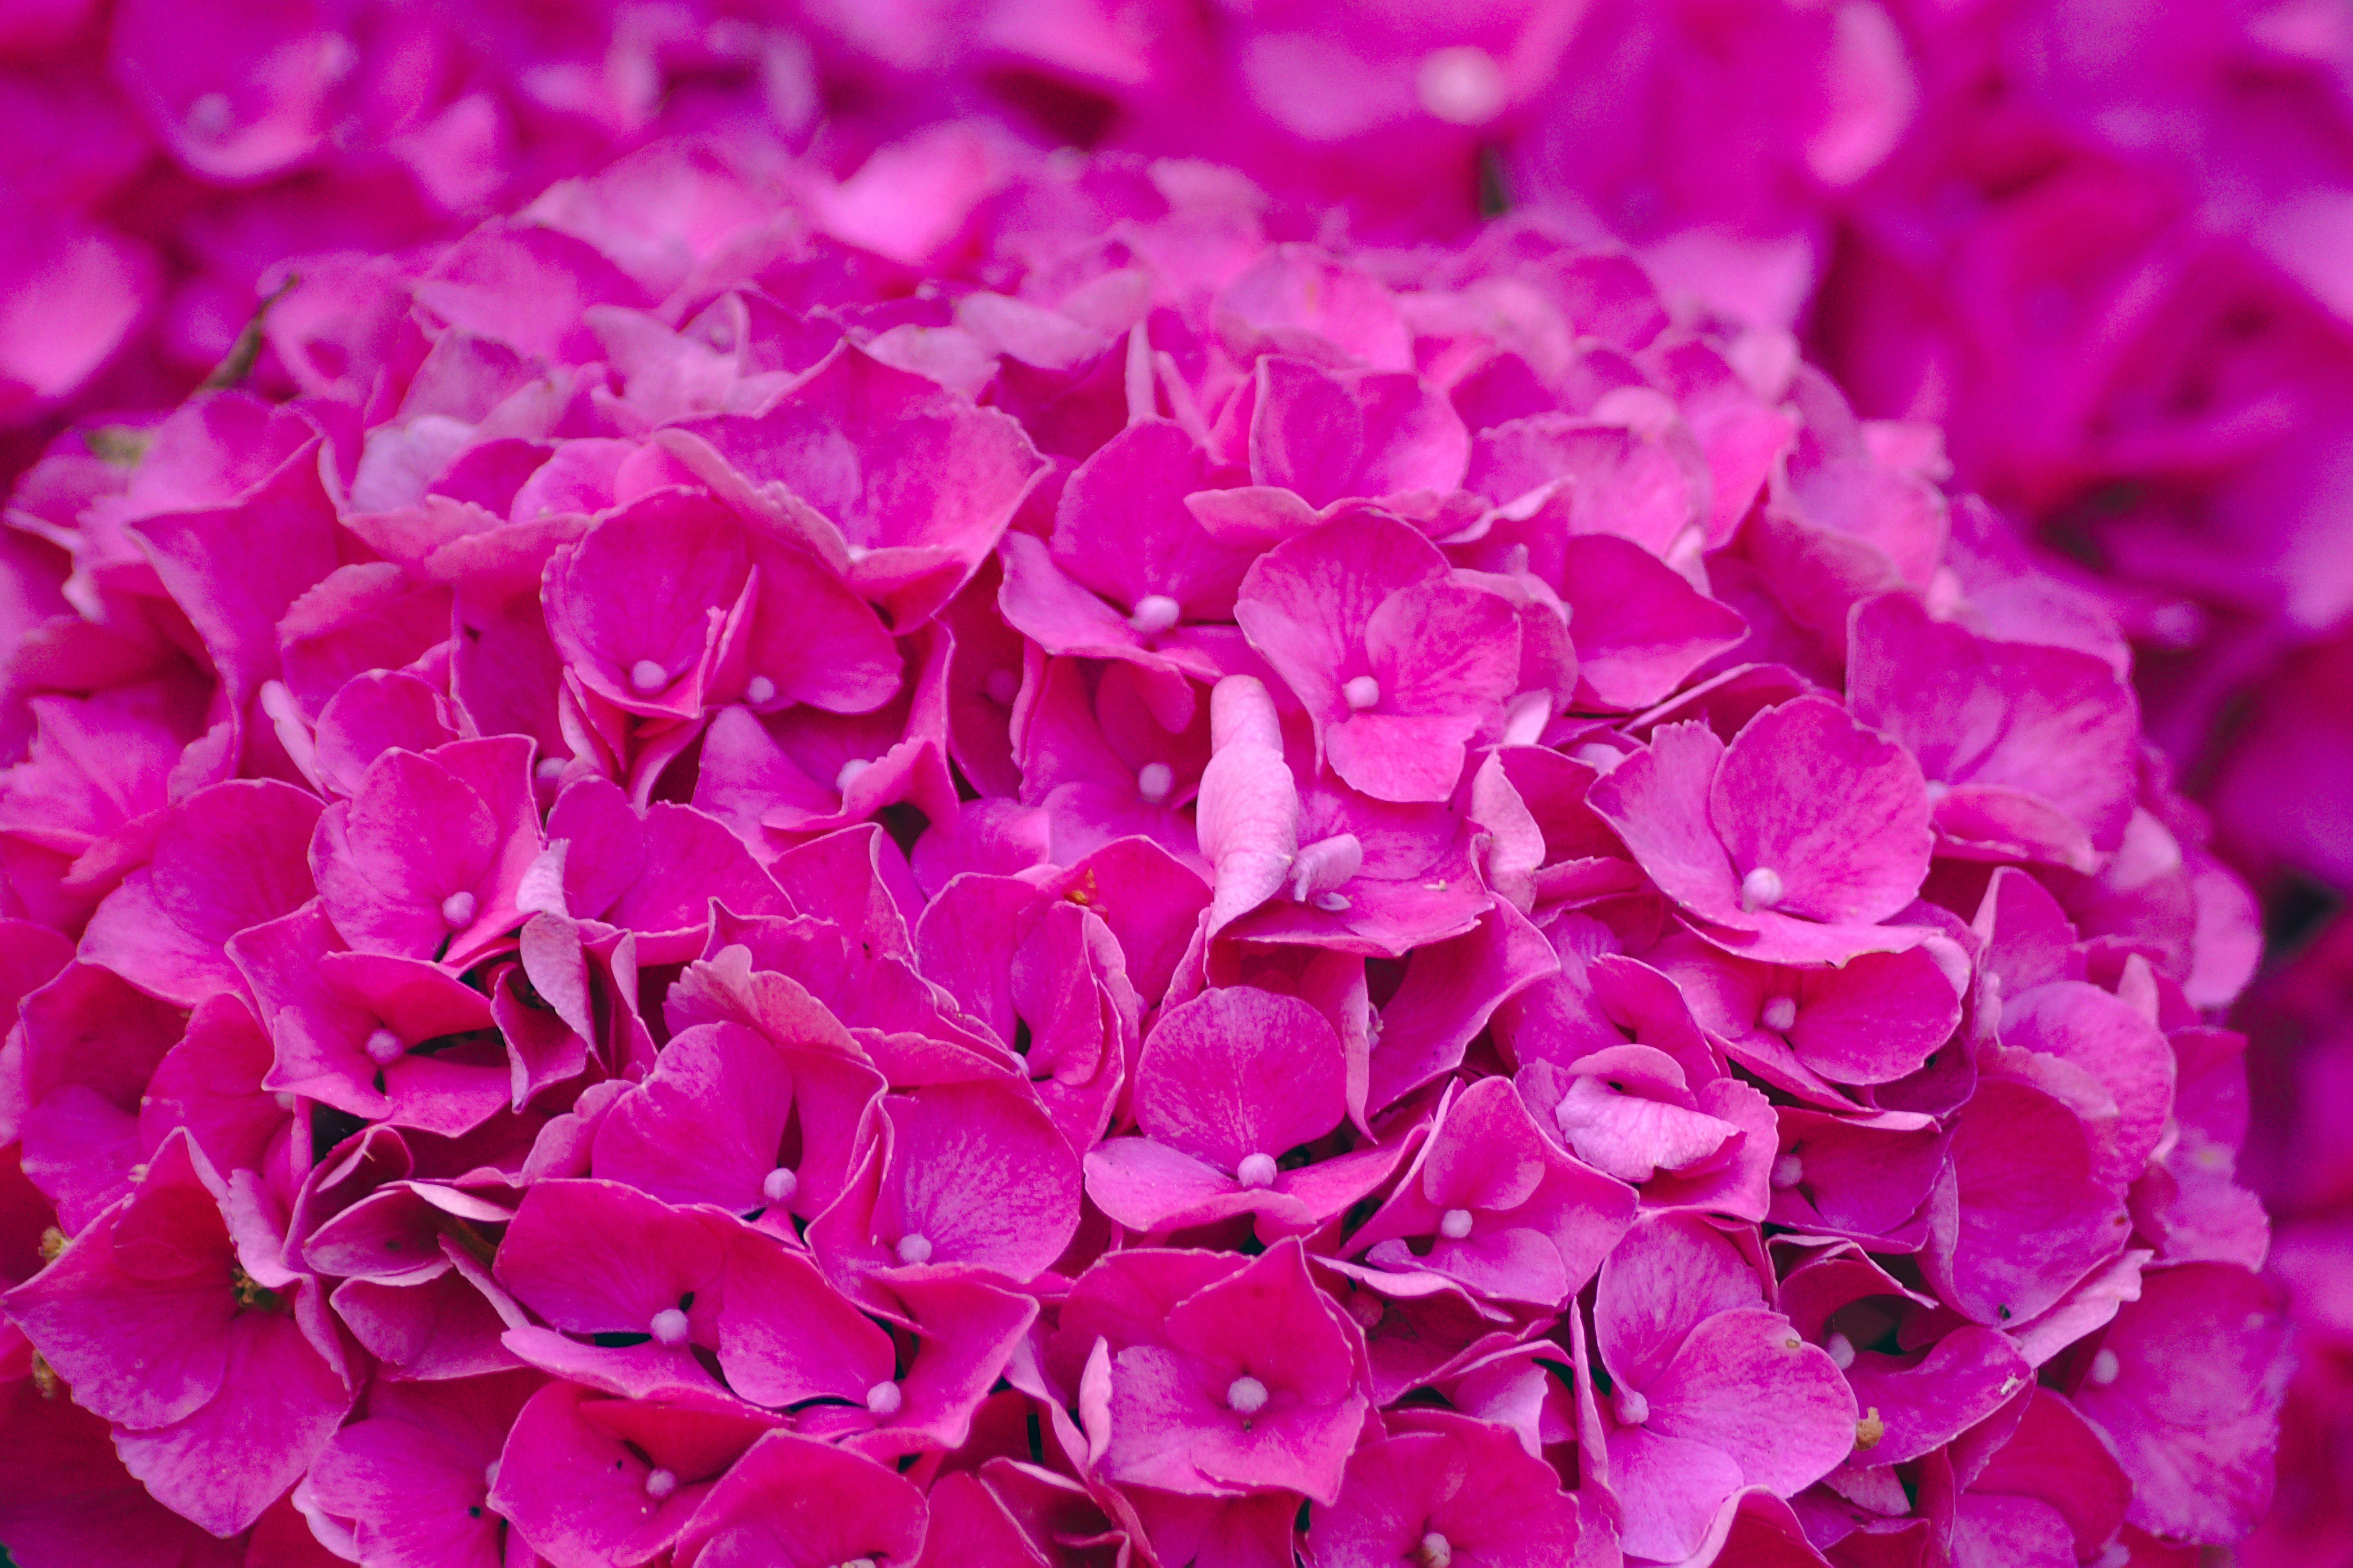 Free stock photo of flowers, horticulture, pink flowers, pink wallpaper